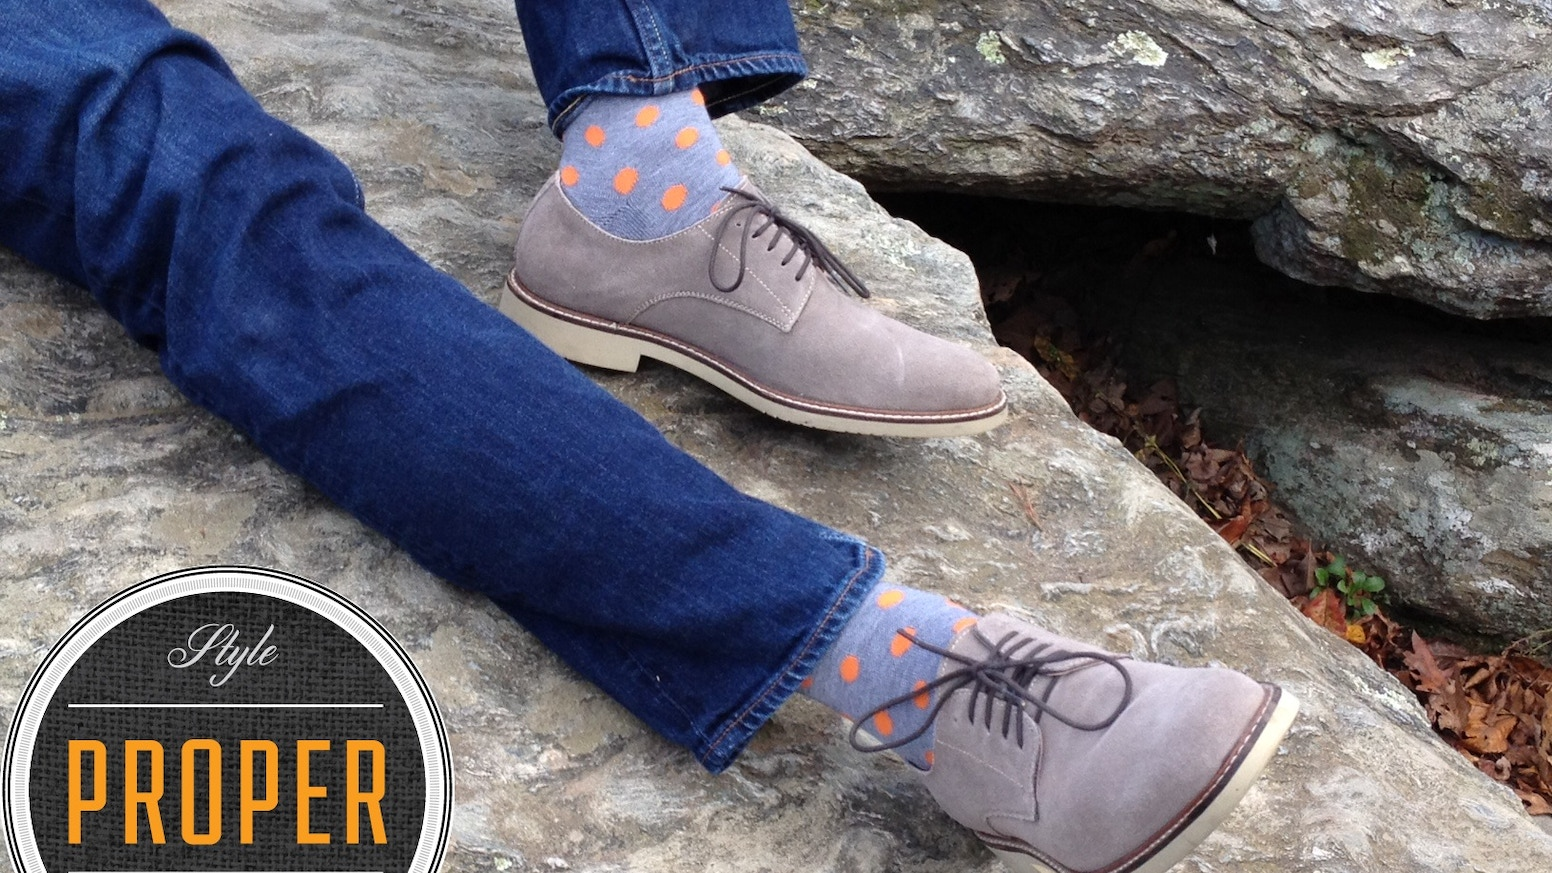 Most Of Our Customers Come On Feet >> Proper Socks Take Proper Care Of Your Feet By Justin Schachner